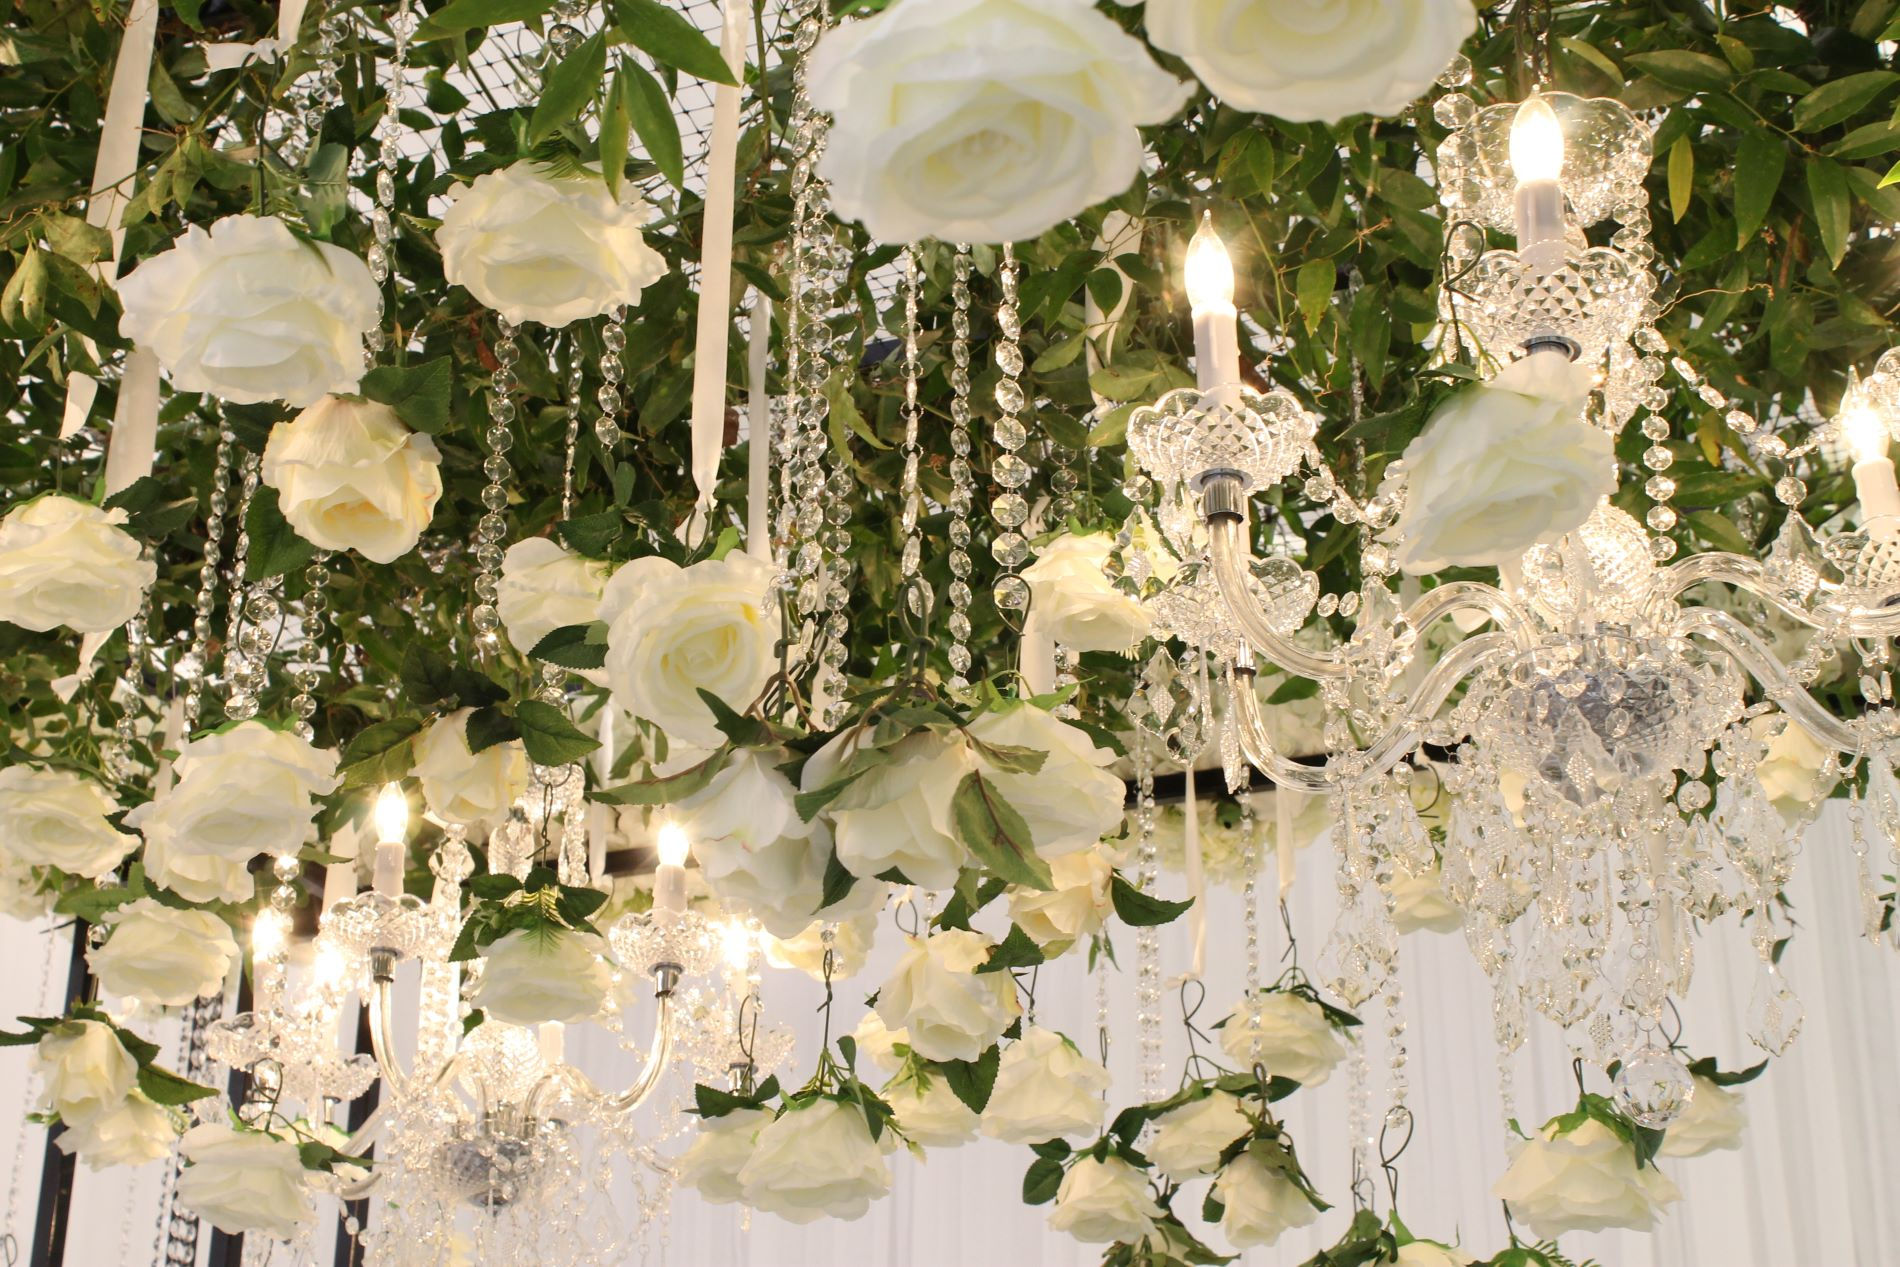 greenery, crystals and white roses hanging from wedding arch